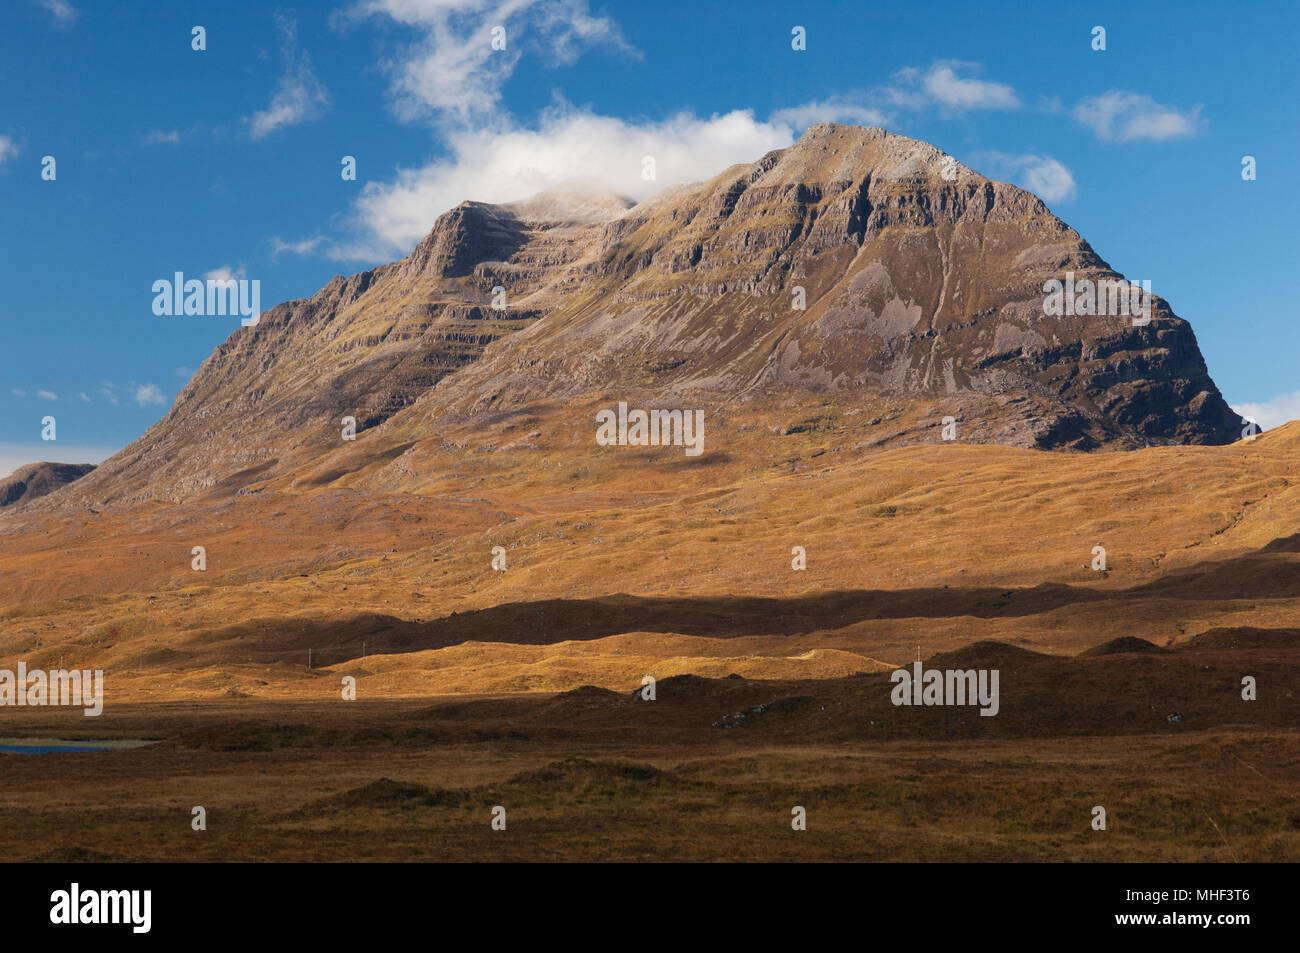 The iconic mountain Liathach - Torridon, Ross-shire, Scottish Highlands. - Stock Image